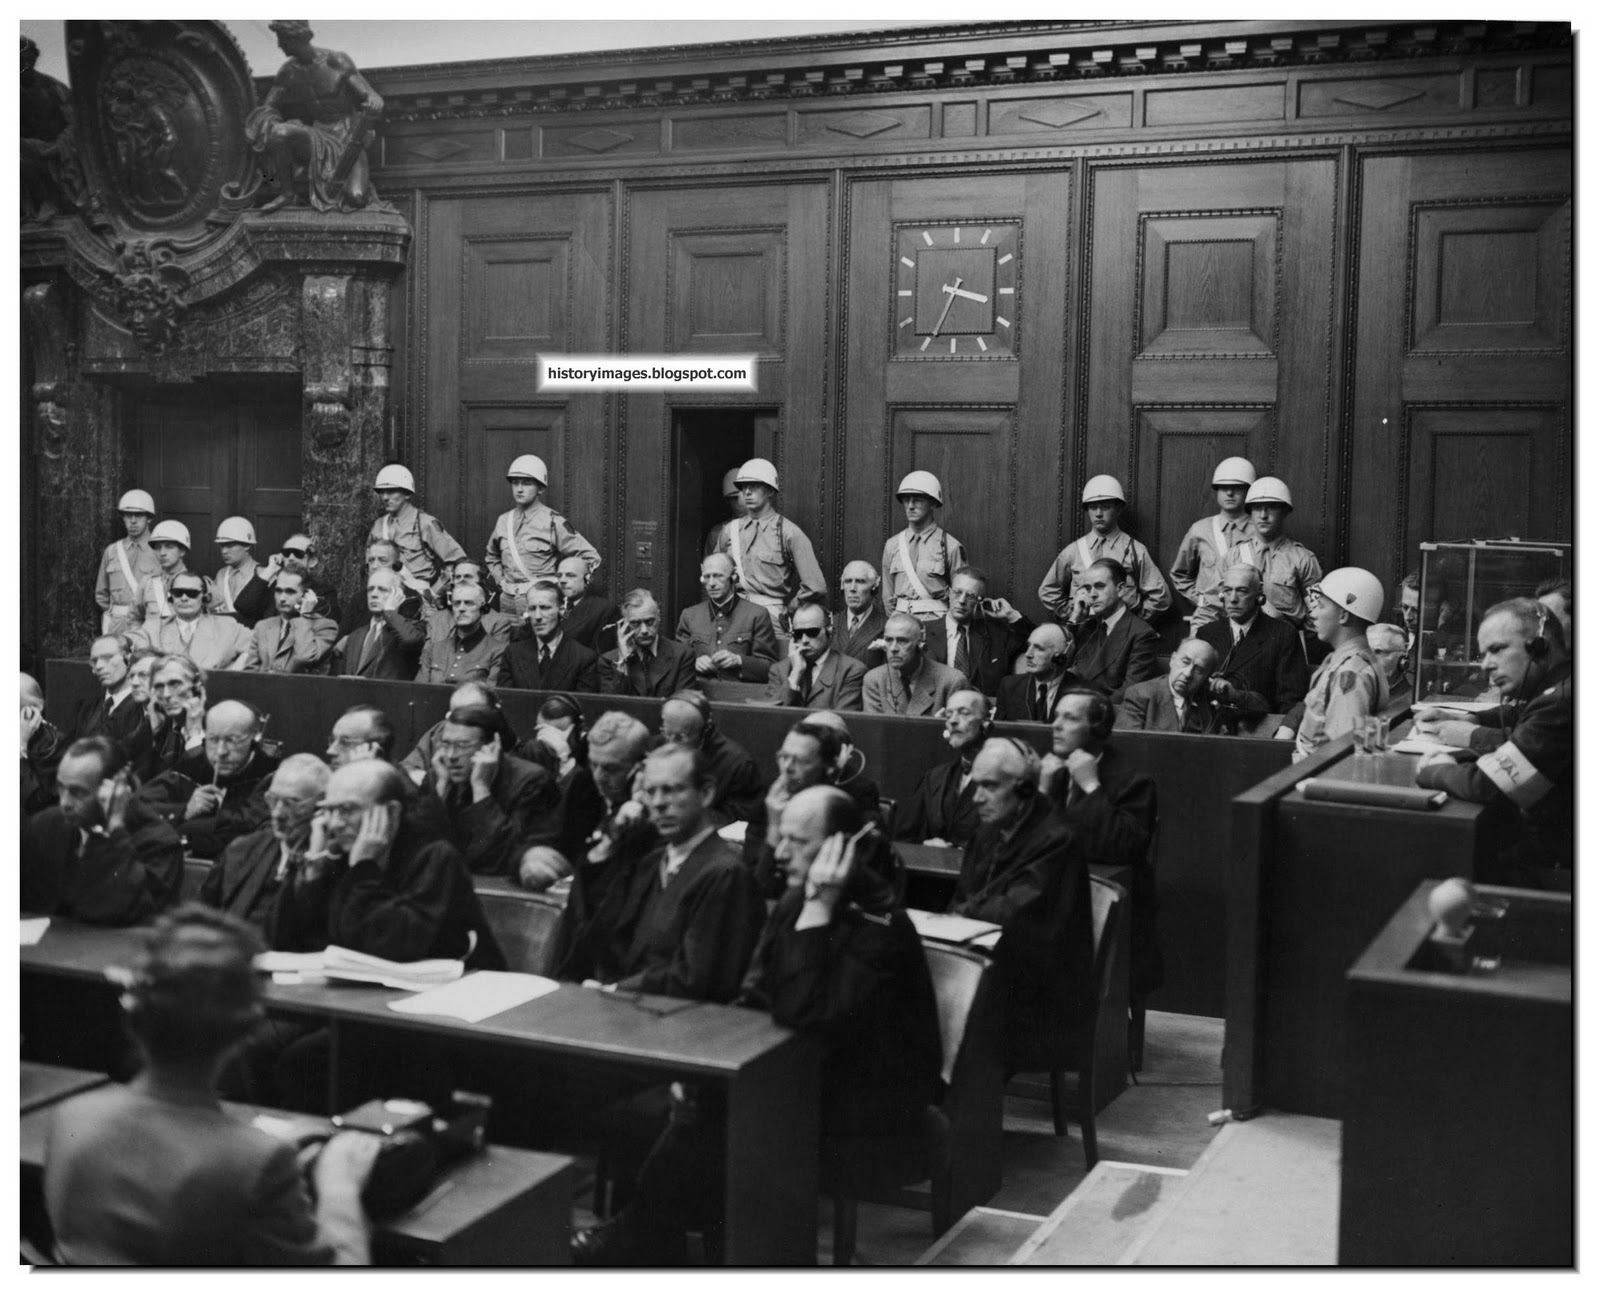 nuremberg trial nazi germany Nuremberg was chosen as the location for the trials because of its symbolic value a huge crowd of soldiers stands at attention beneath the reviewing stand at a 1936 nazi rally in nuremberg, germany.